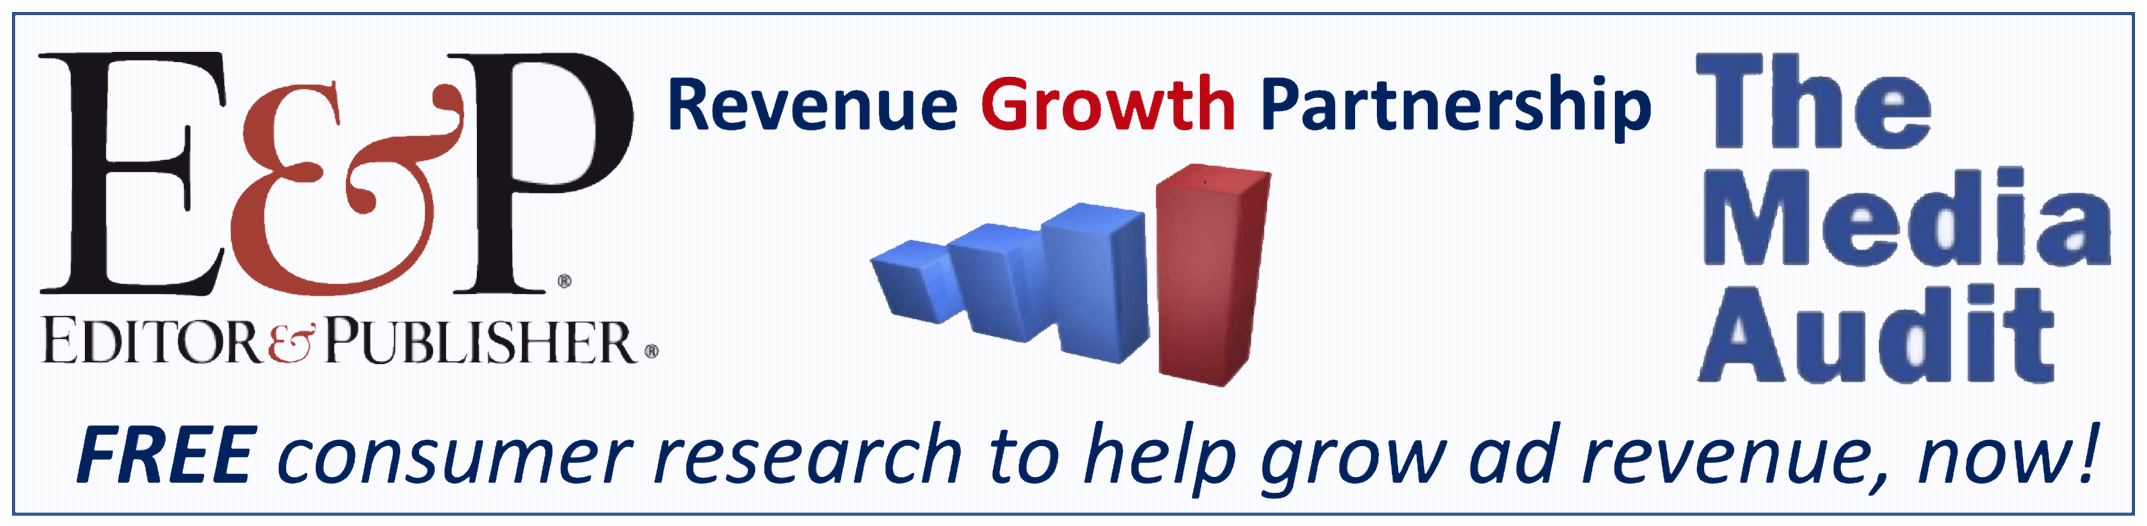 revenue growth partnership